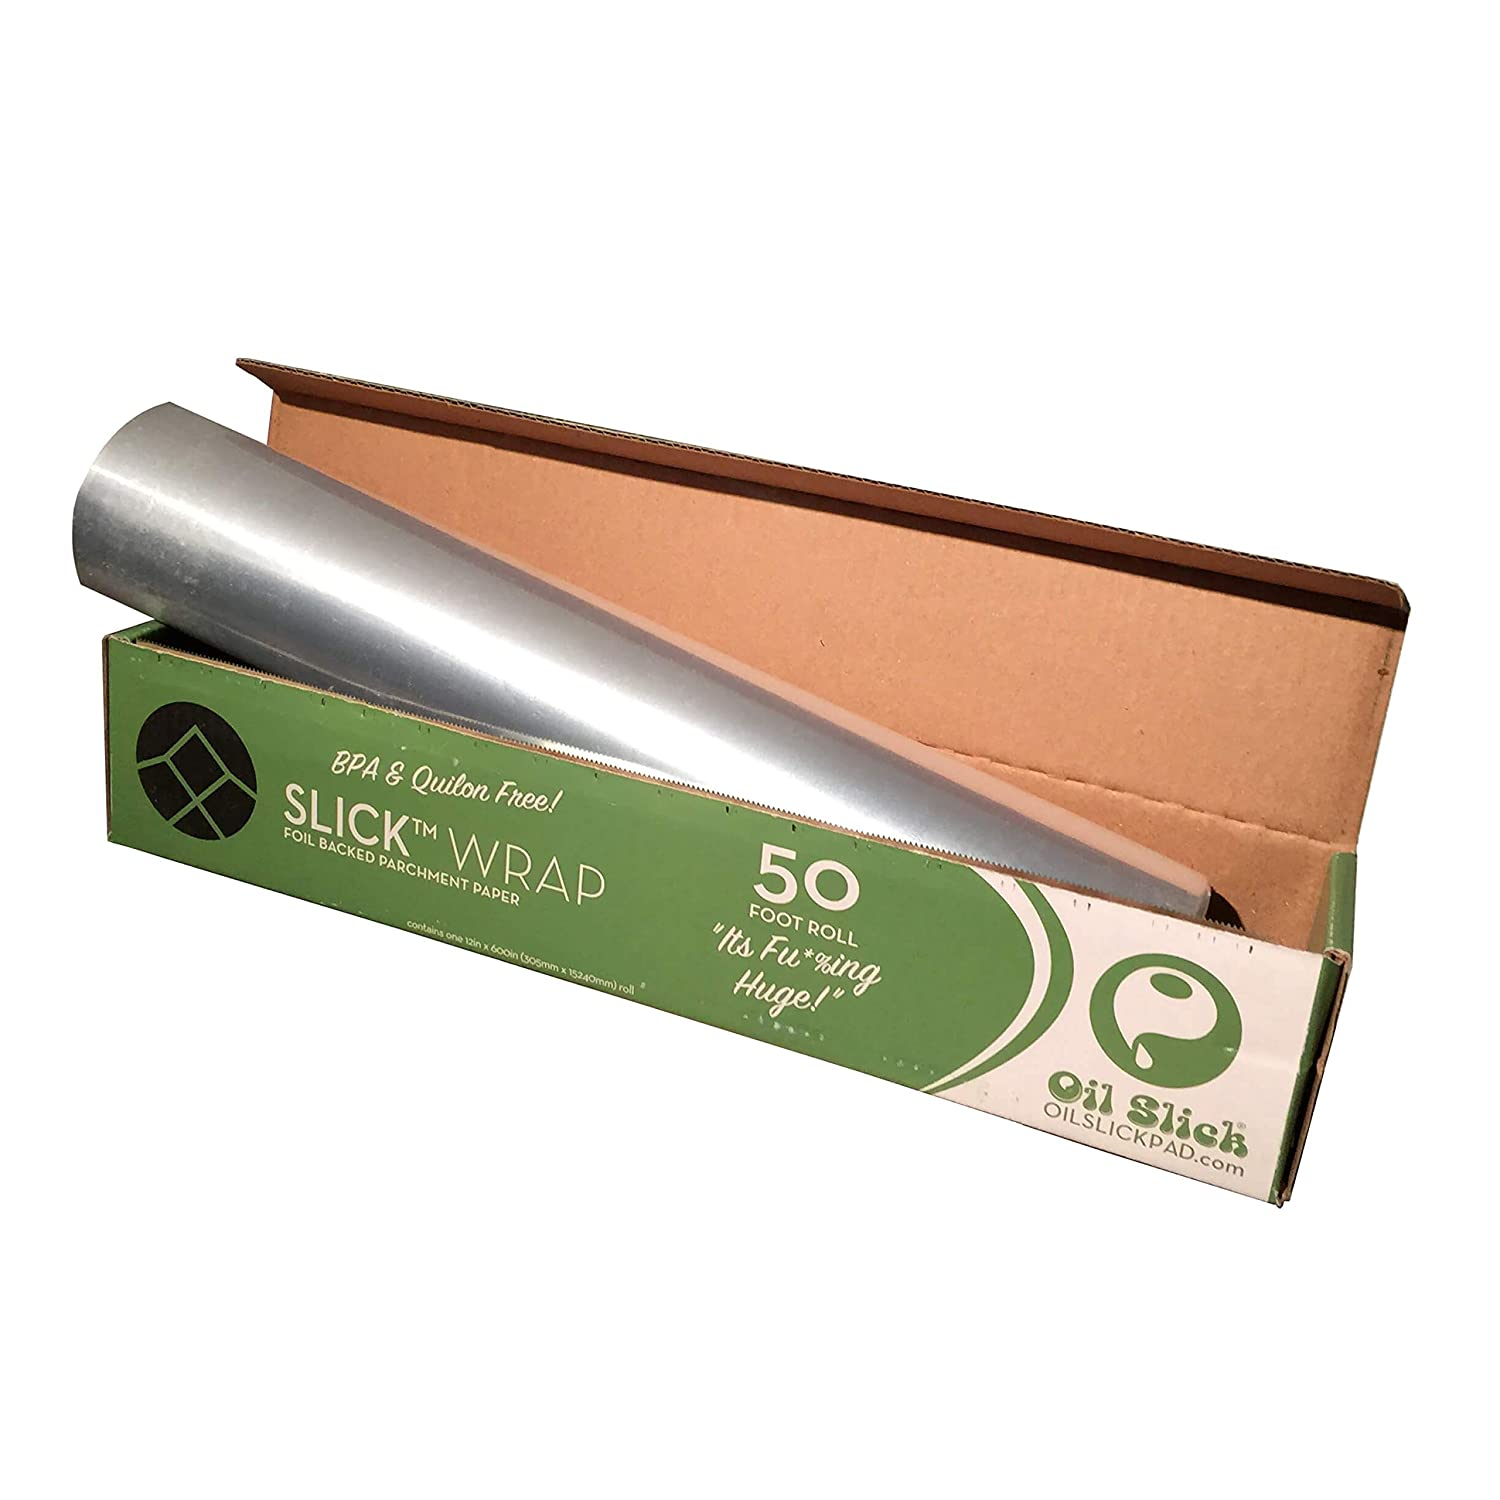 Oil Slick Wrap Foil Backed Parchment Paper 12x600 Alternative to Martha Wrap or Reynolds Pan Lining